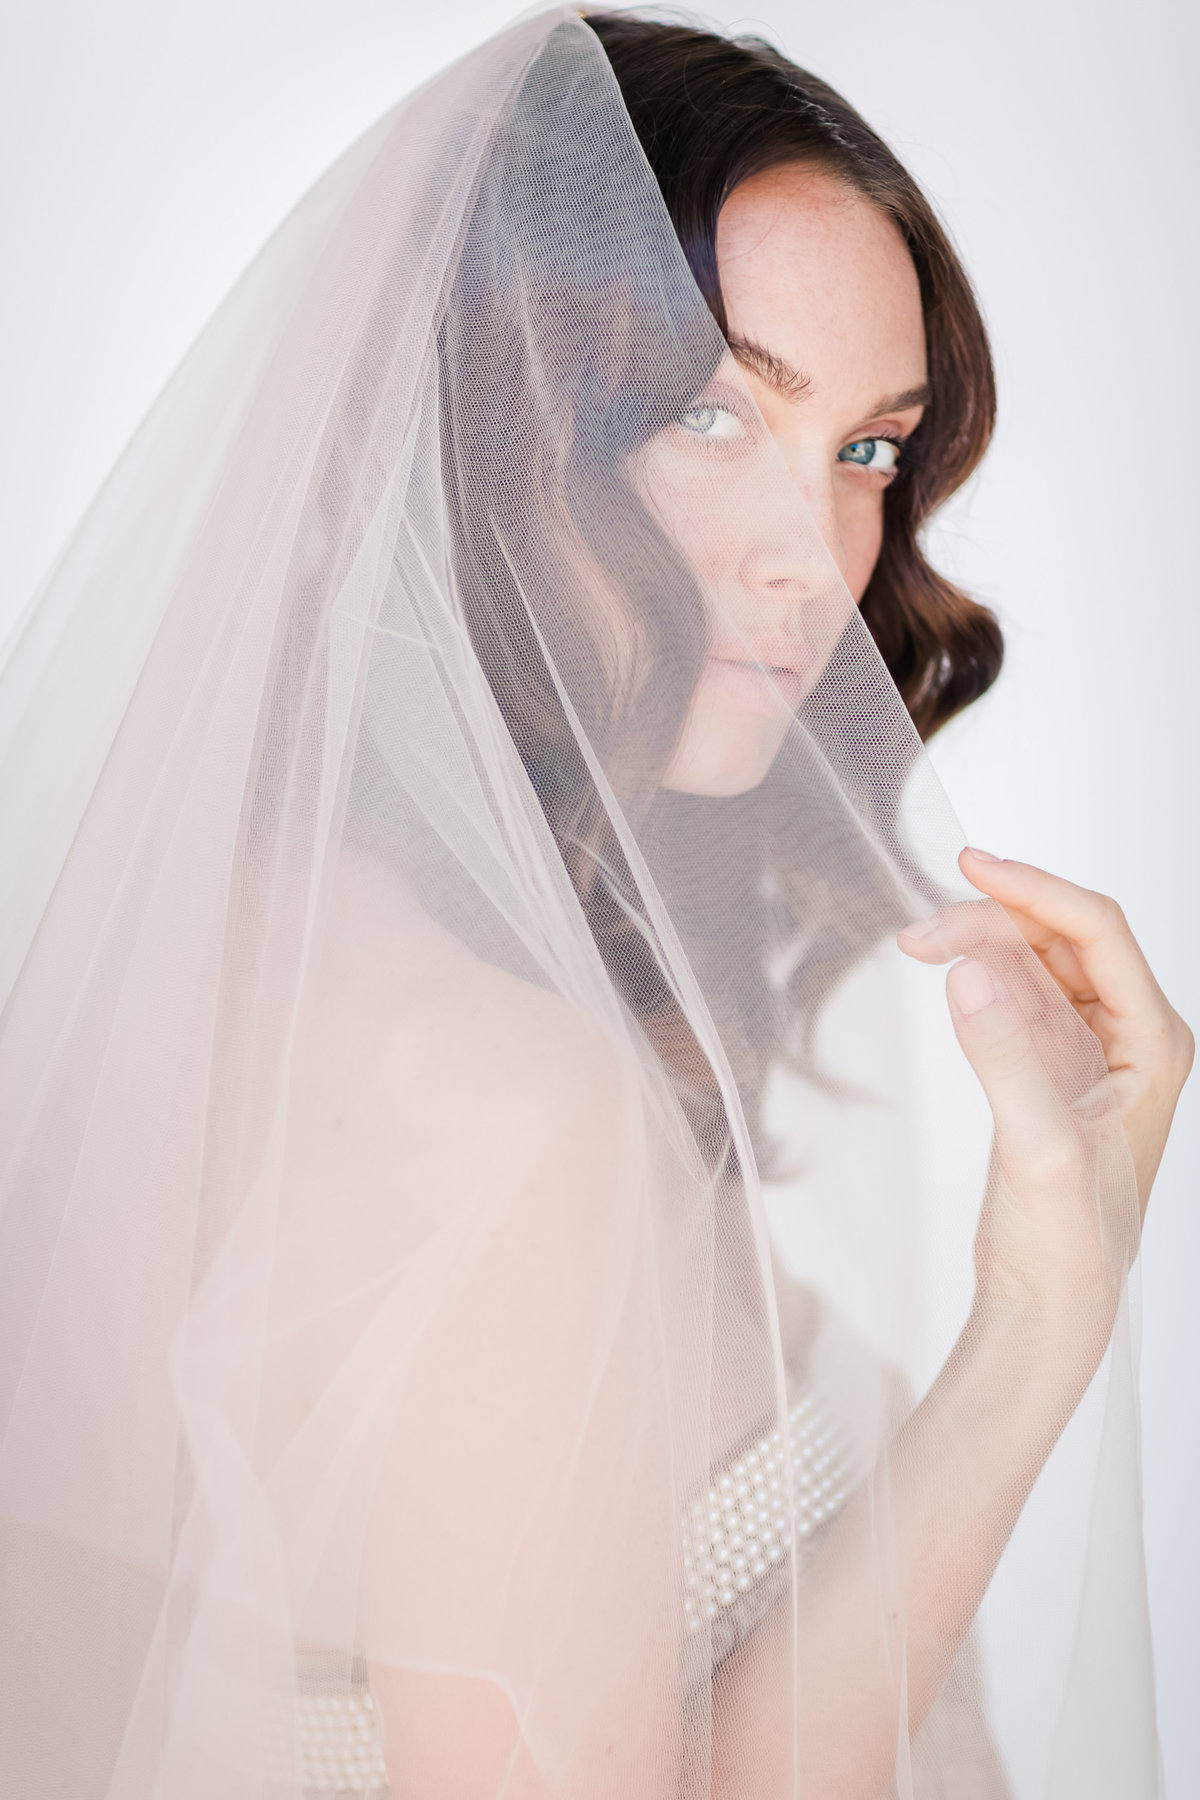 Bridal Crown Editorial Shoot Trace Henningsen Accessories_Valorie Darling Photography-1-3